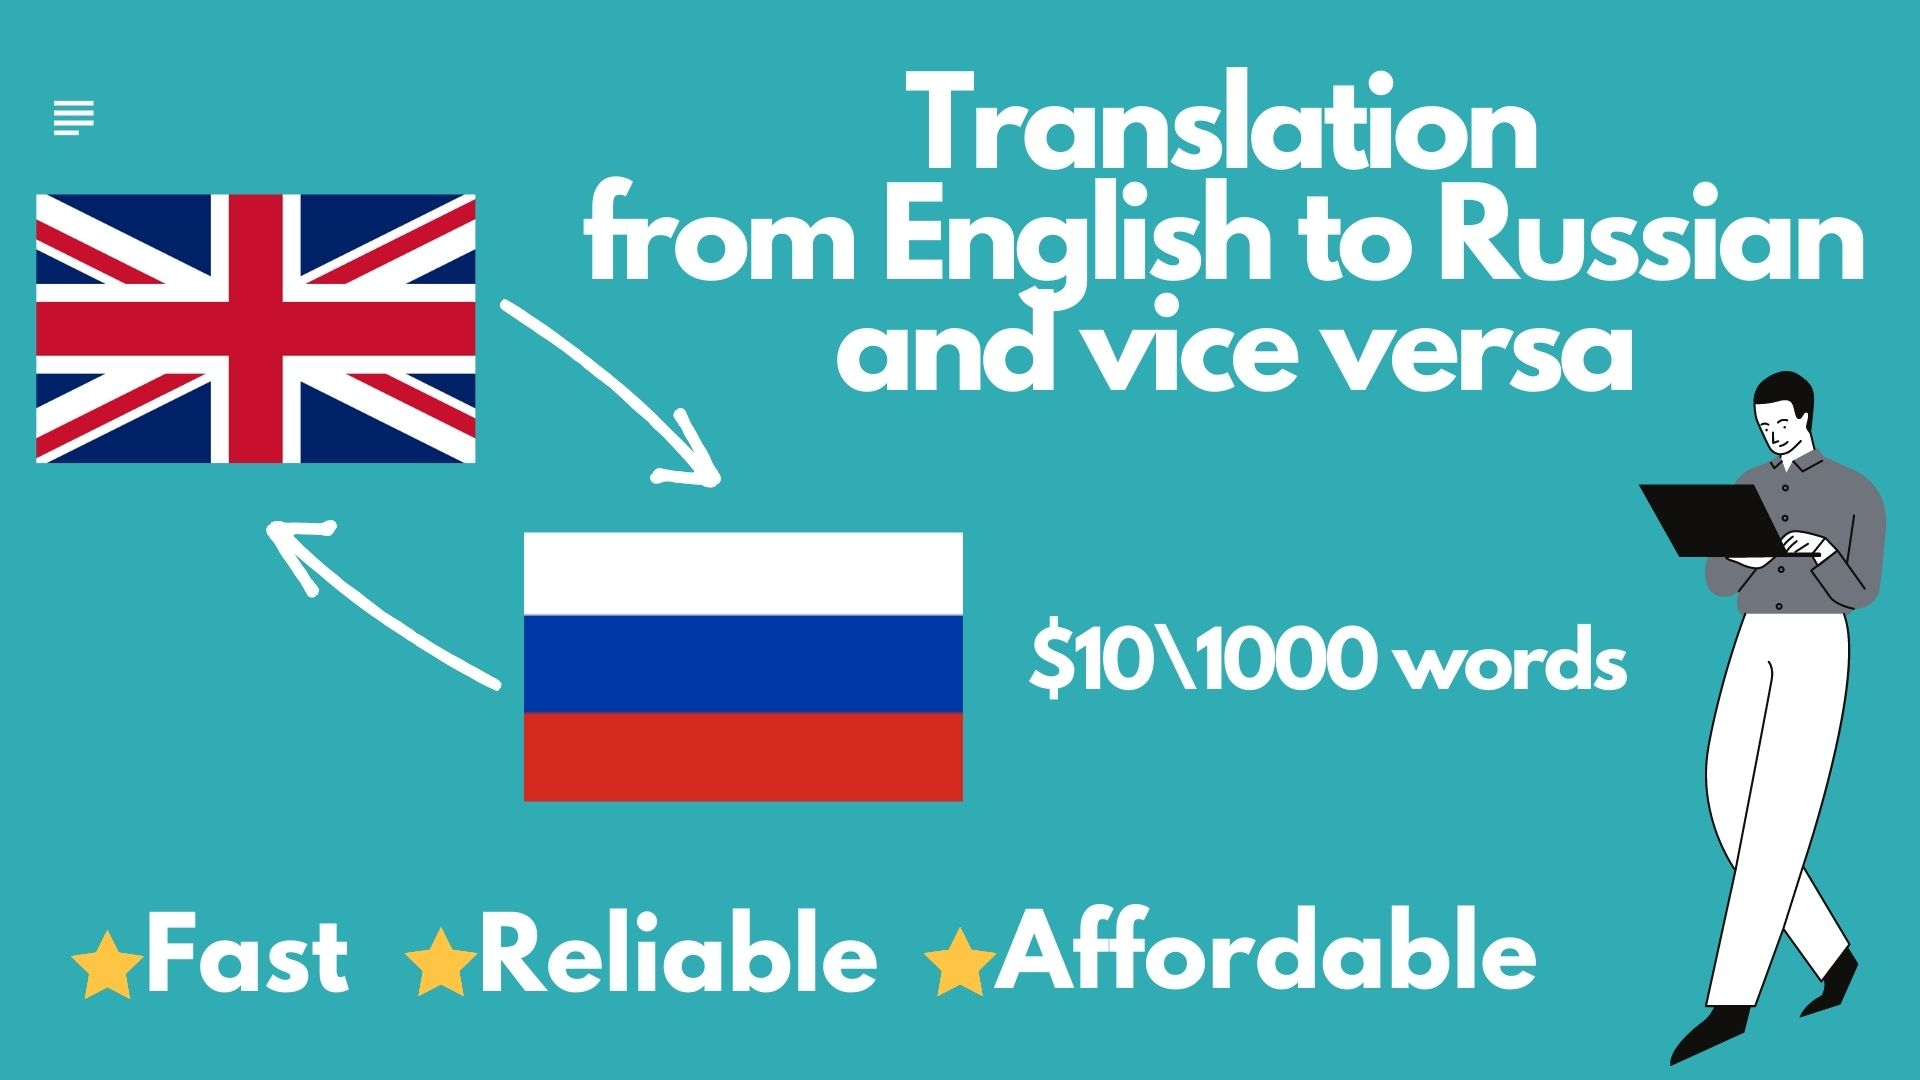 I provide the translation services from English to Russian and vice versa.